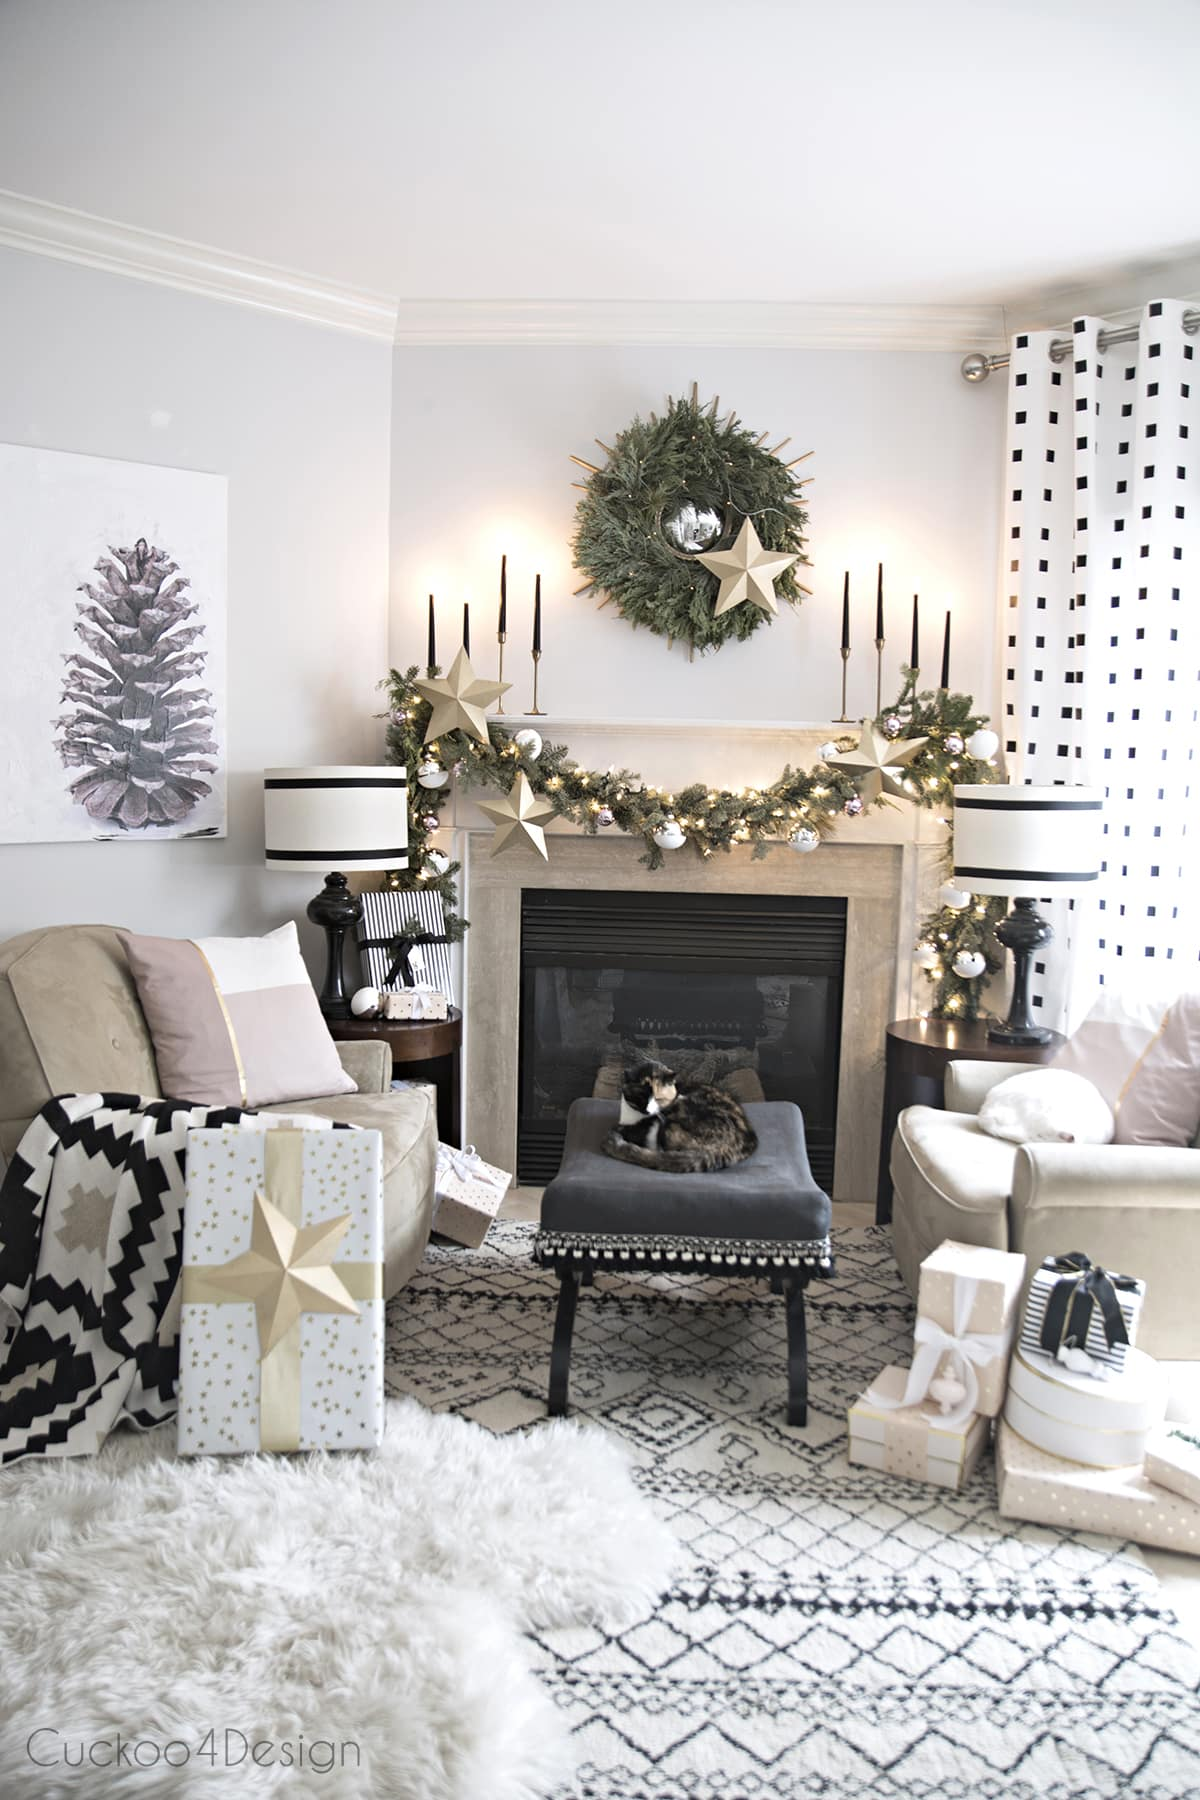 Better homes and gardens fireplace designs slate fireplace designs cottage style fireplace Better homes and gardens lifestyle